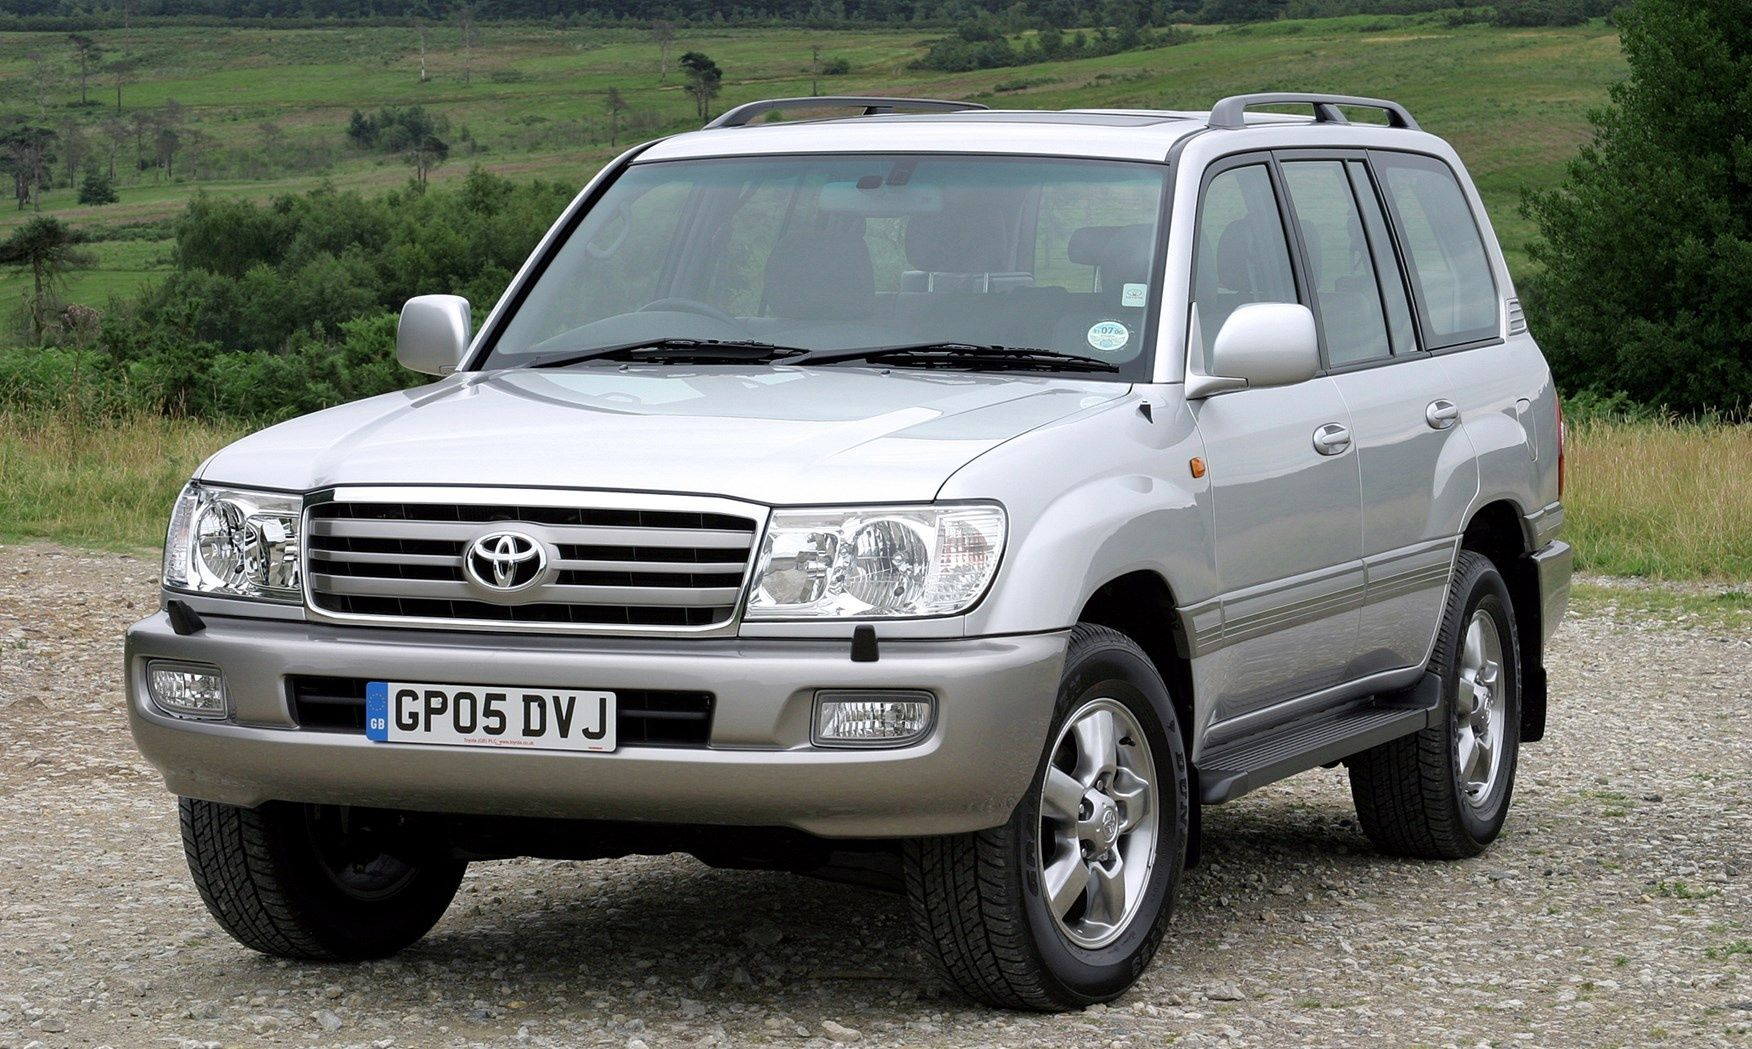 Enjoy Free Pdf Download Of 2006 Toyota Land Cruiser Electrical Wiring Diagram Em0010u This Manual Is Land Cruiser Toyota Land Cruiser 100 Toyota Land Cruiser